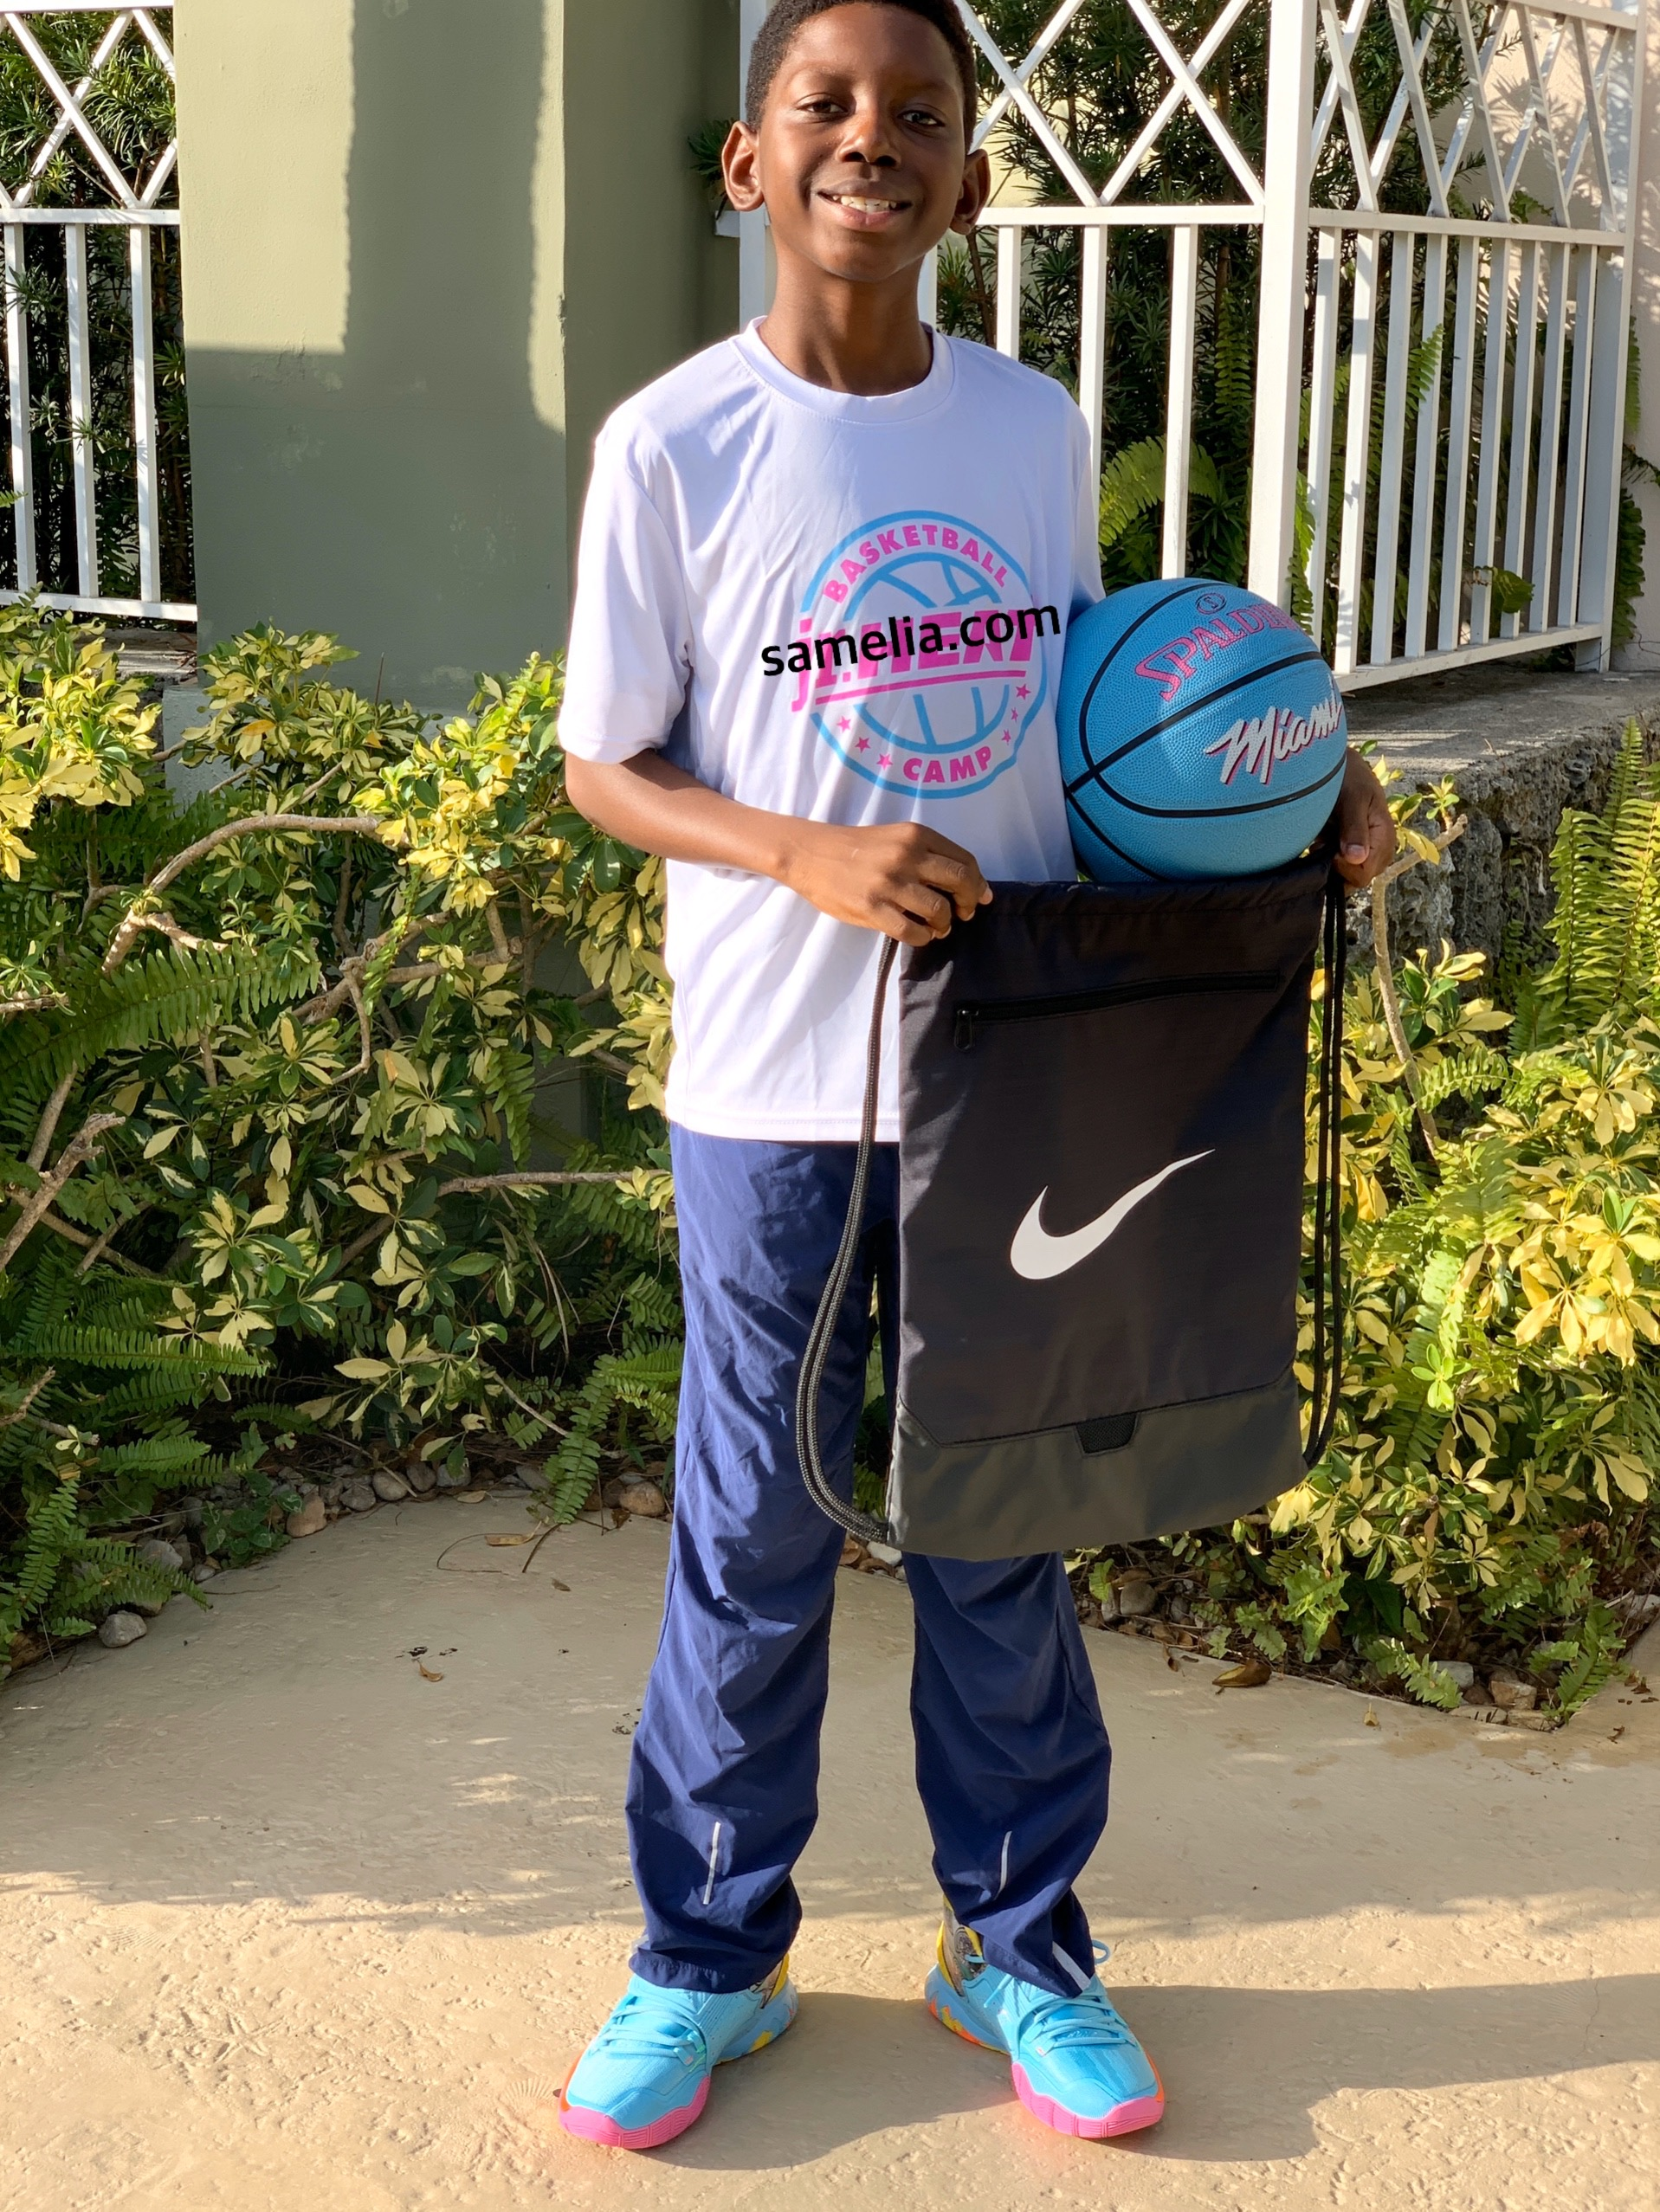 Samelia, samelia miller, Samelia's world, Samelia's world blog, Miami heat, Nike, Nike pre heat, Kyrie 6 pre heat, Kyrie 6, Kyrie Irving, Samelia Thanksgiving, Thanksgiving, Cyber Monday